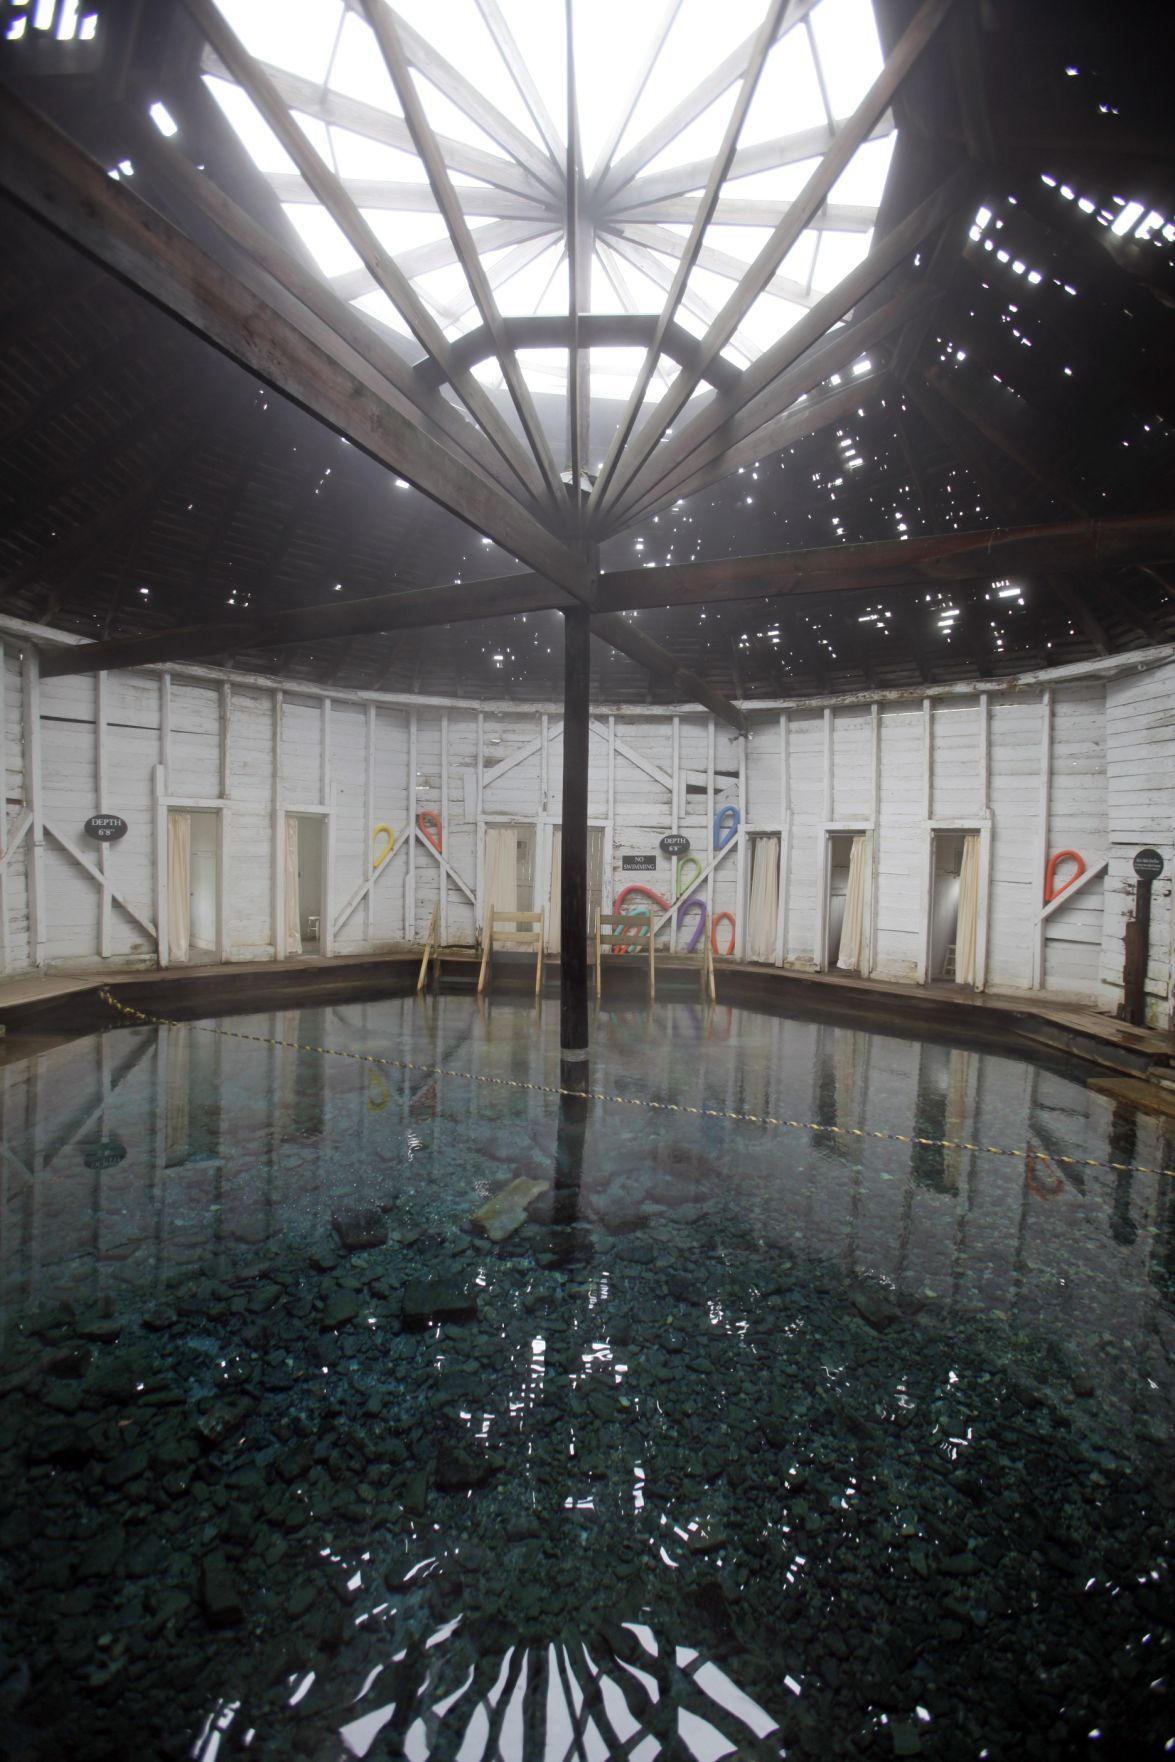 Jefferson Pools In Bath County Shut Down For Safety